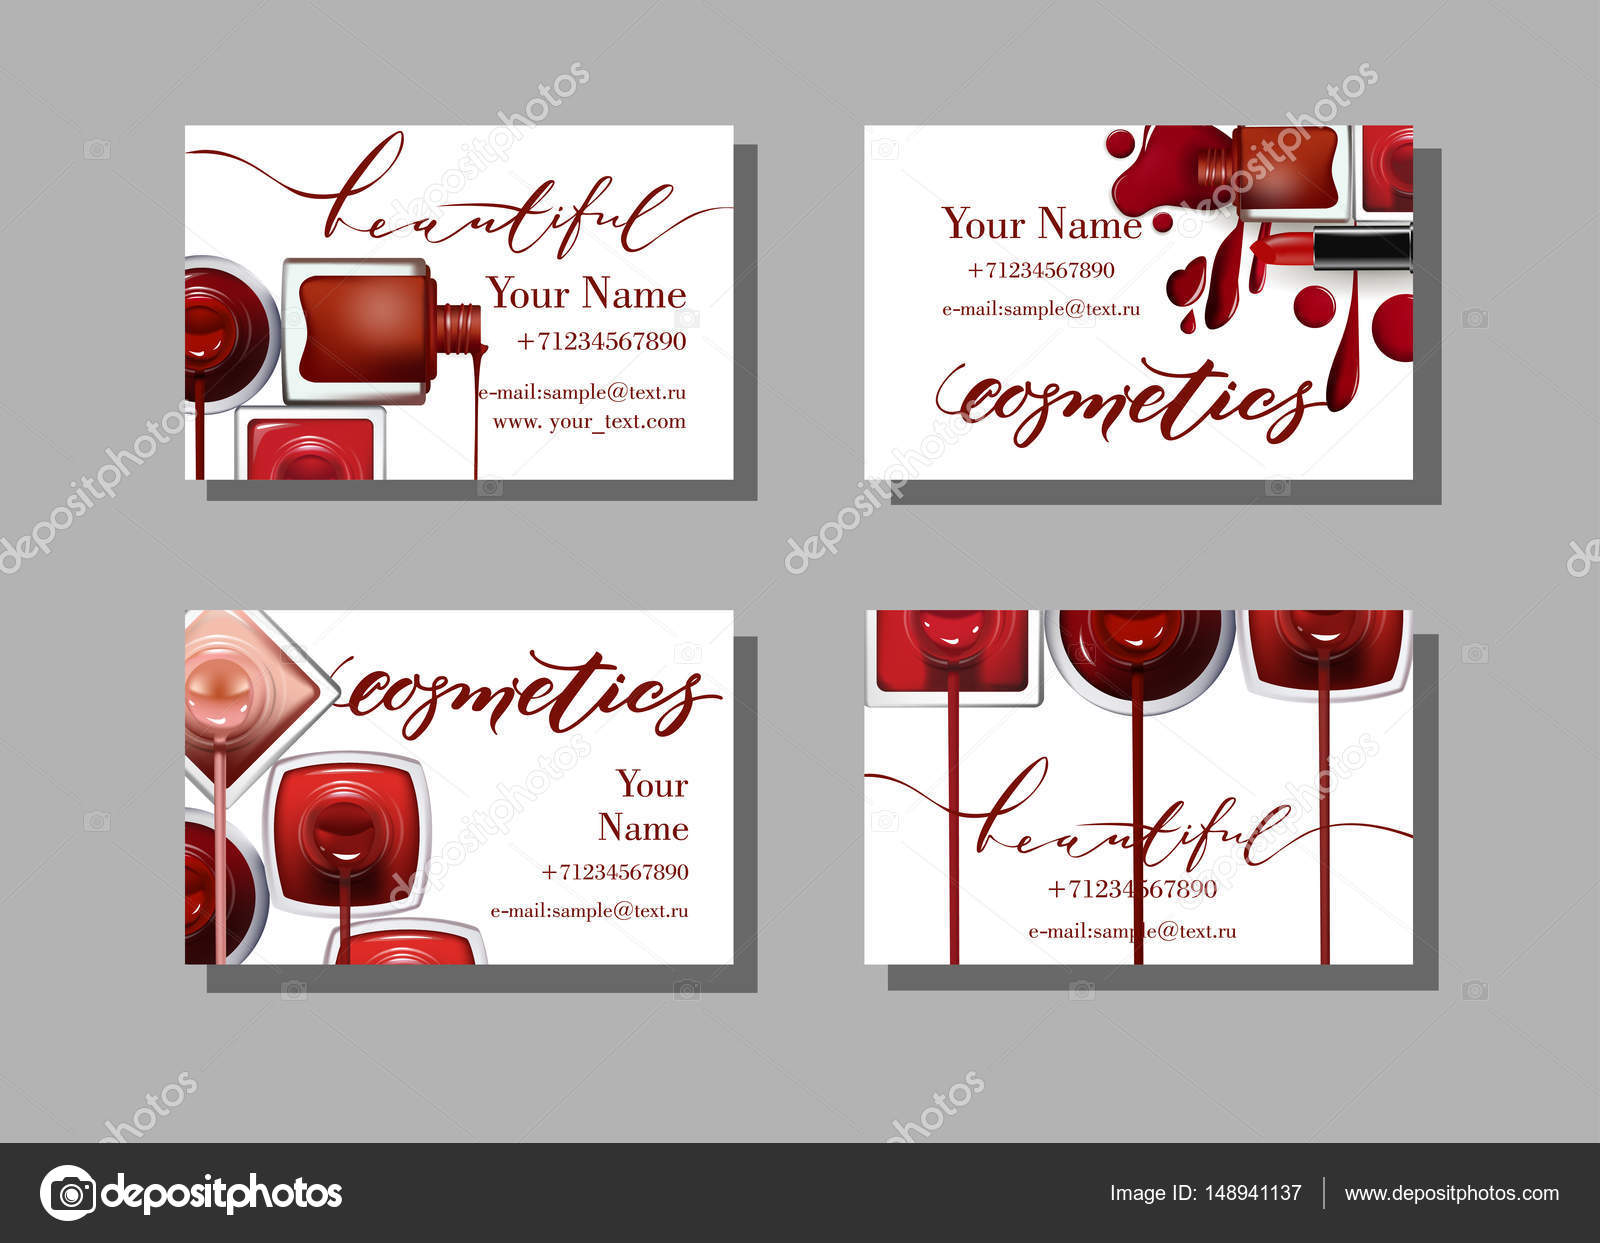 Makeup artist business card vector template with makeup items makeup artist business card vector template with makeup items pattern nail polish template vector cheaphphosting Image collections